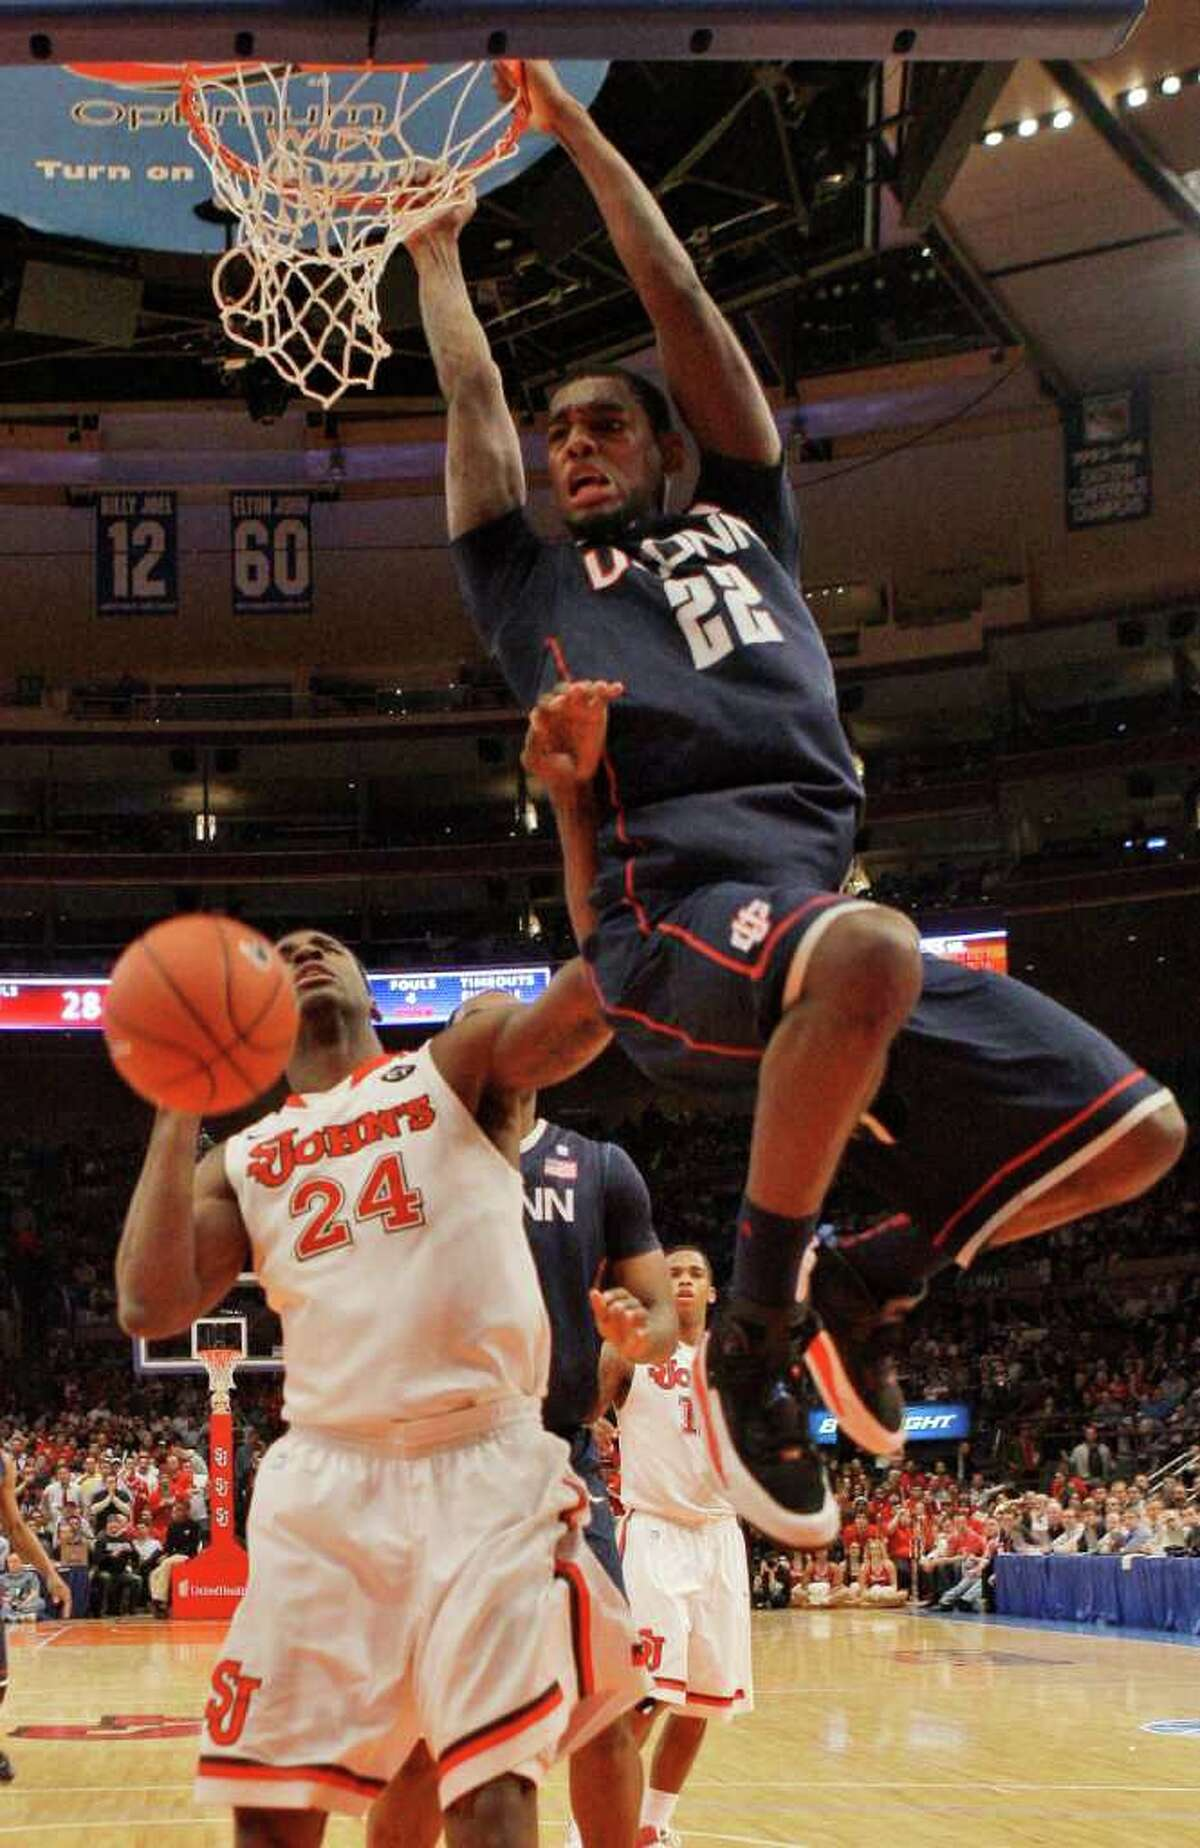 Connecticut's Roscoe Smith (22) dunks the ball over St. John's Justin Burrell (24) in the first half of an NCAA college basketball game Thursday, Feb. 10, 2011, in New York. (AP Photo/Frank Franklin II)